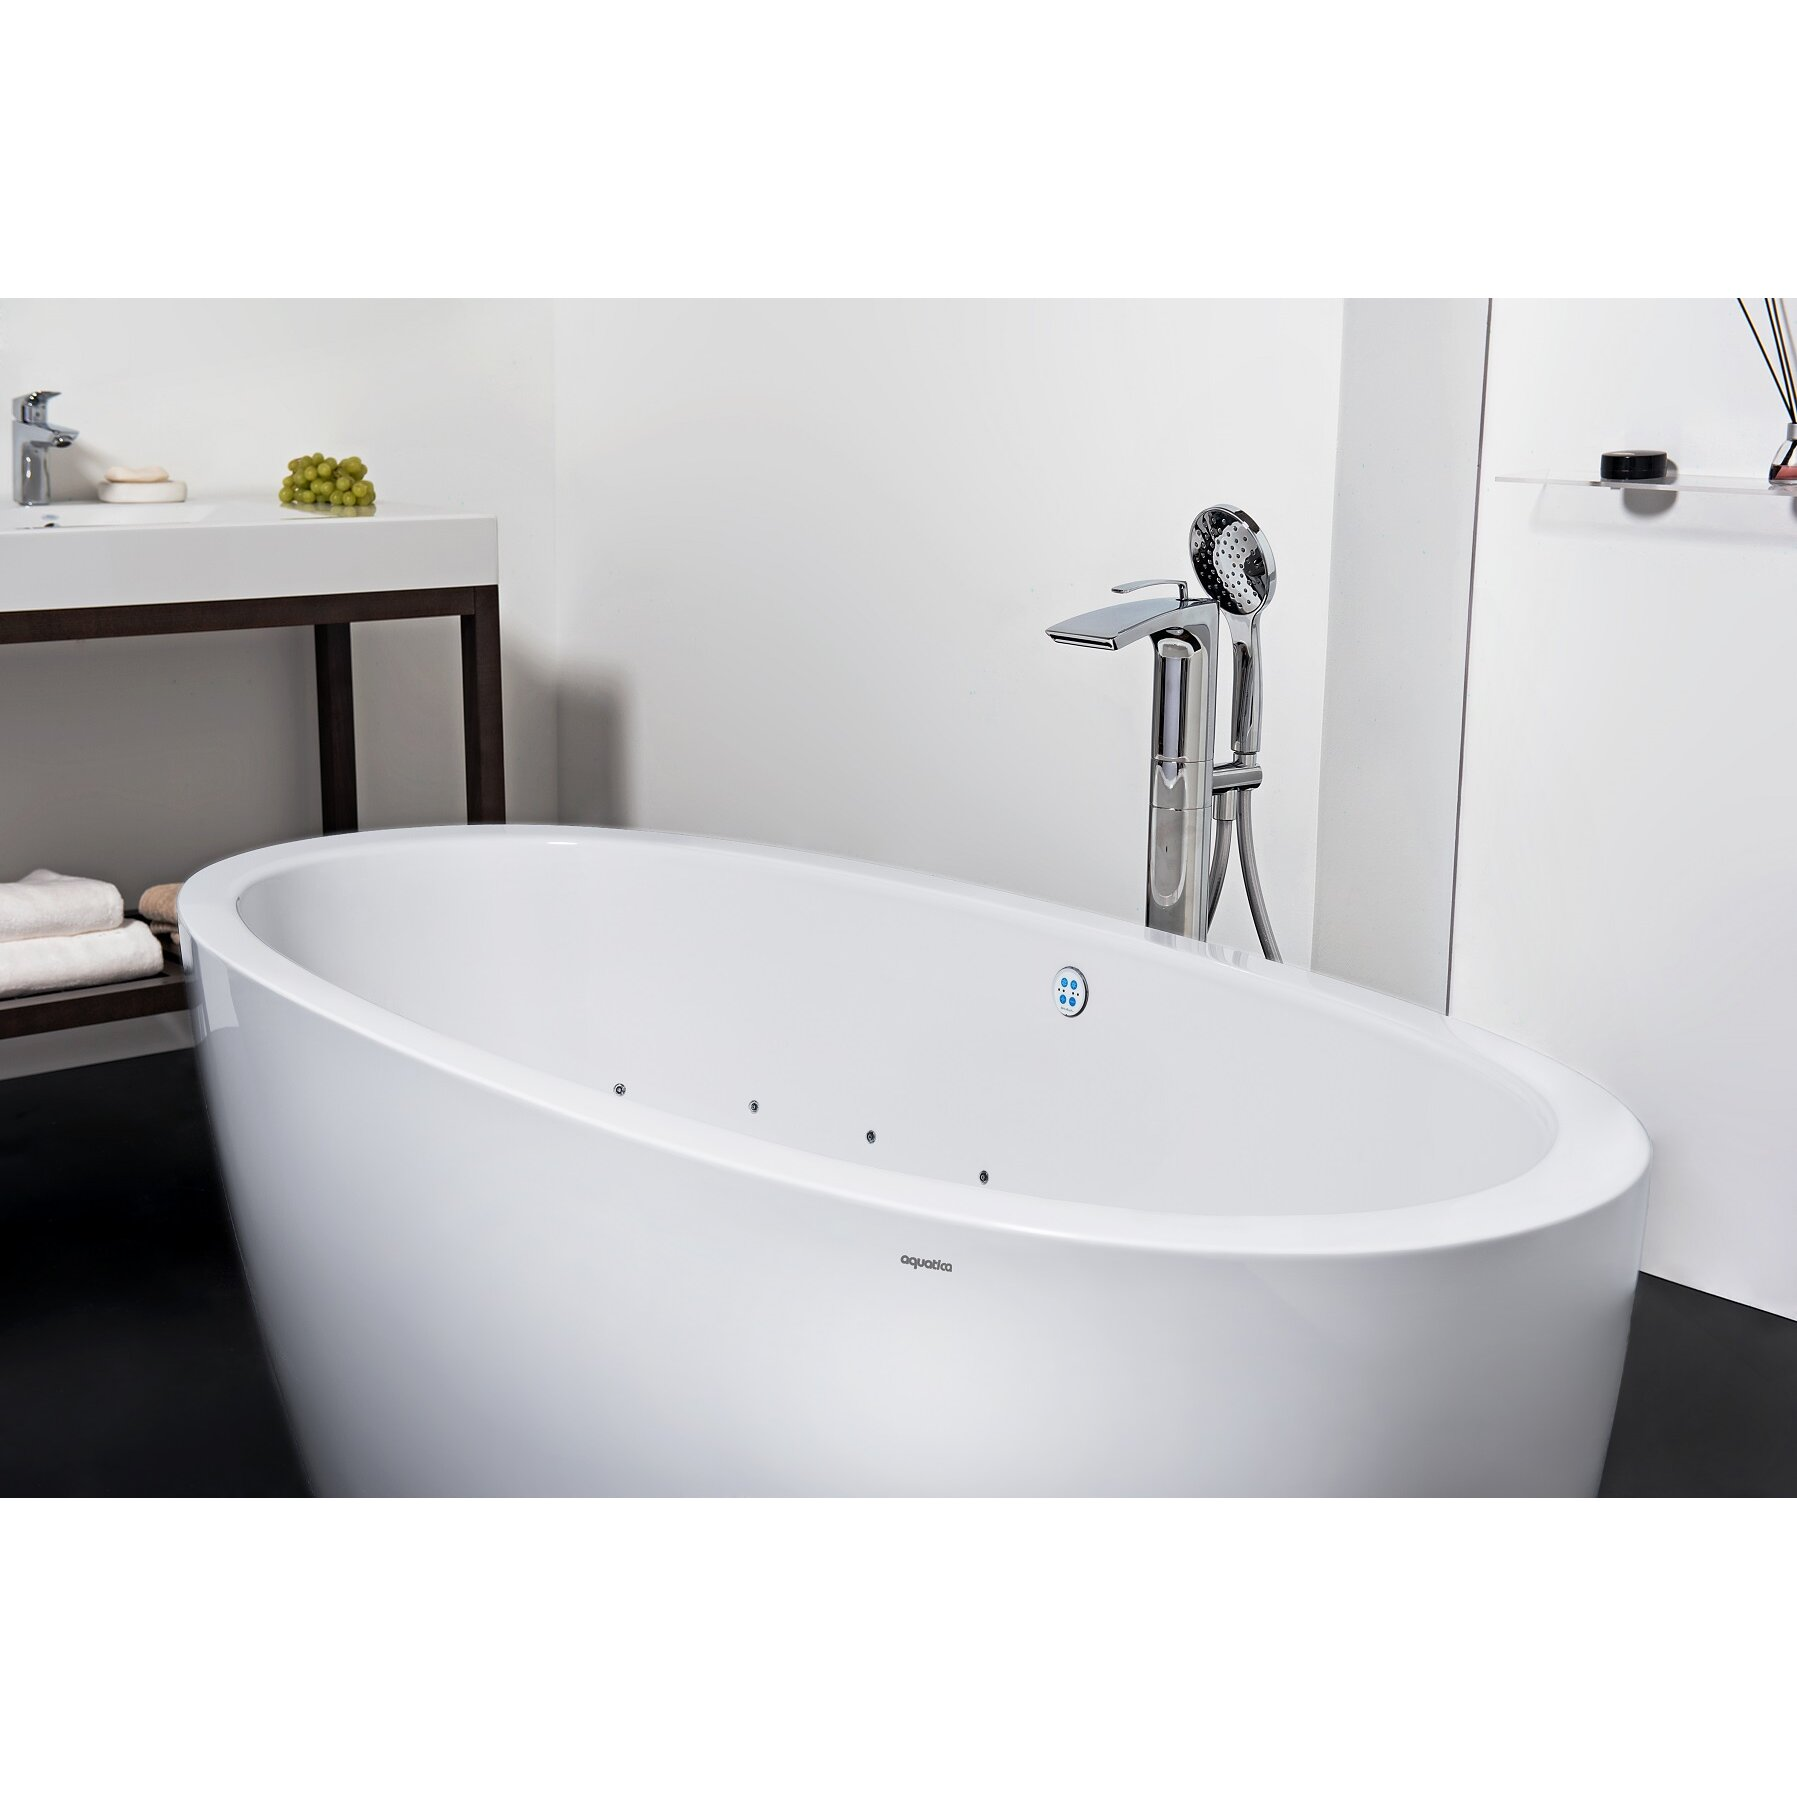 Aquatica purescape 63 x 30 whirlpool bathtub wayfair for Whirlpool baths pros and cons